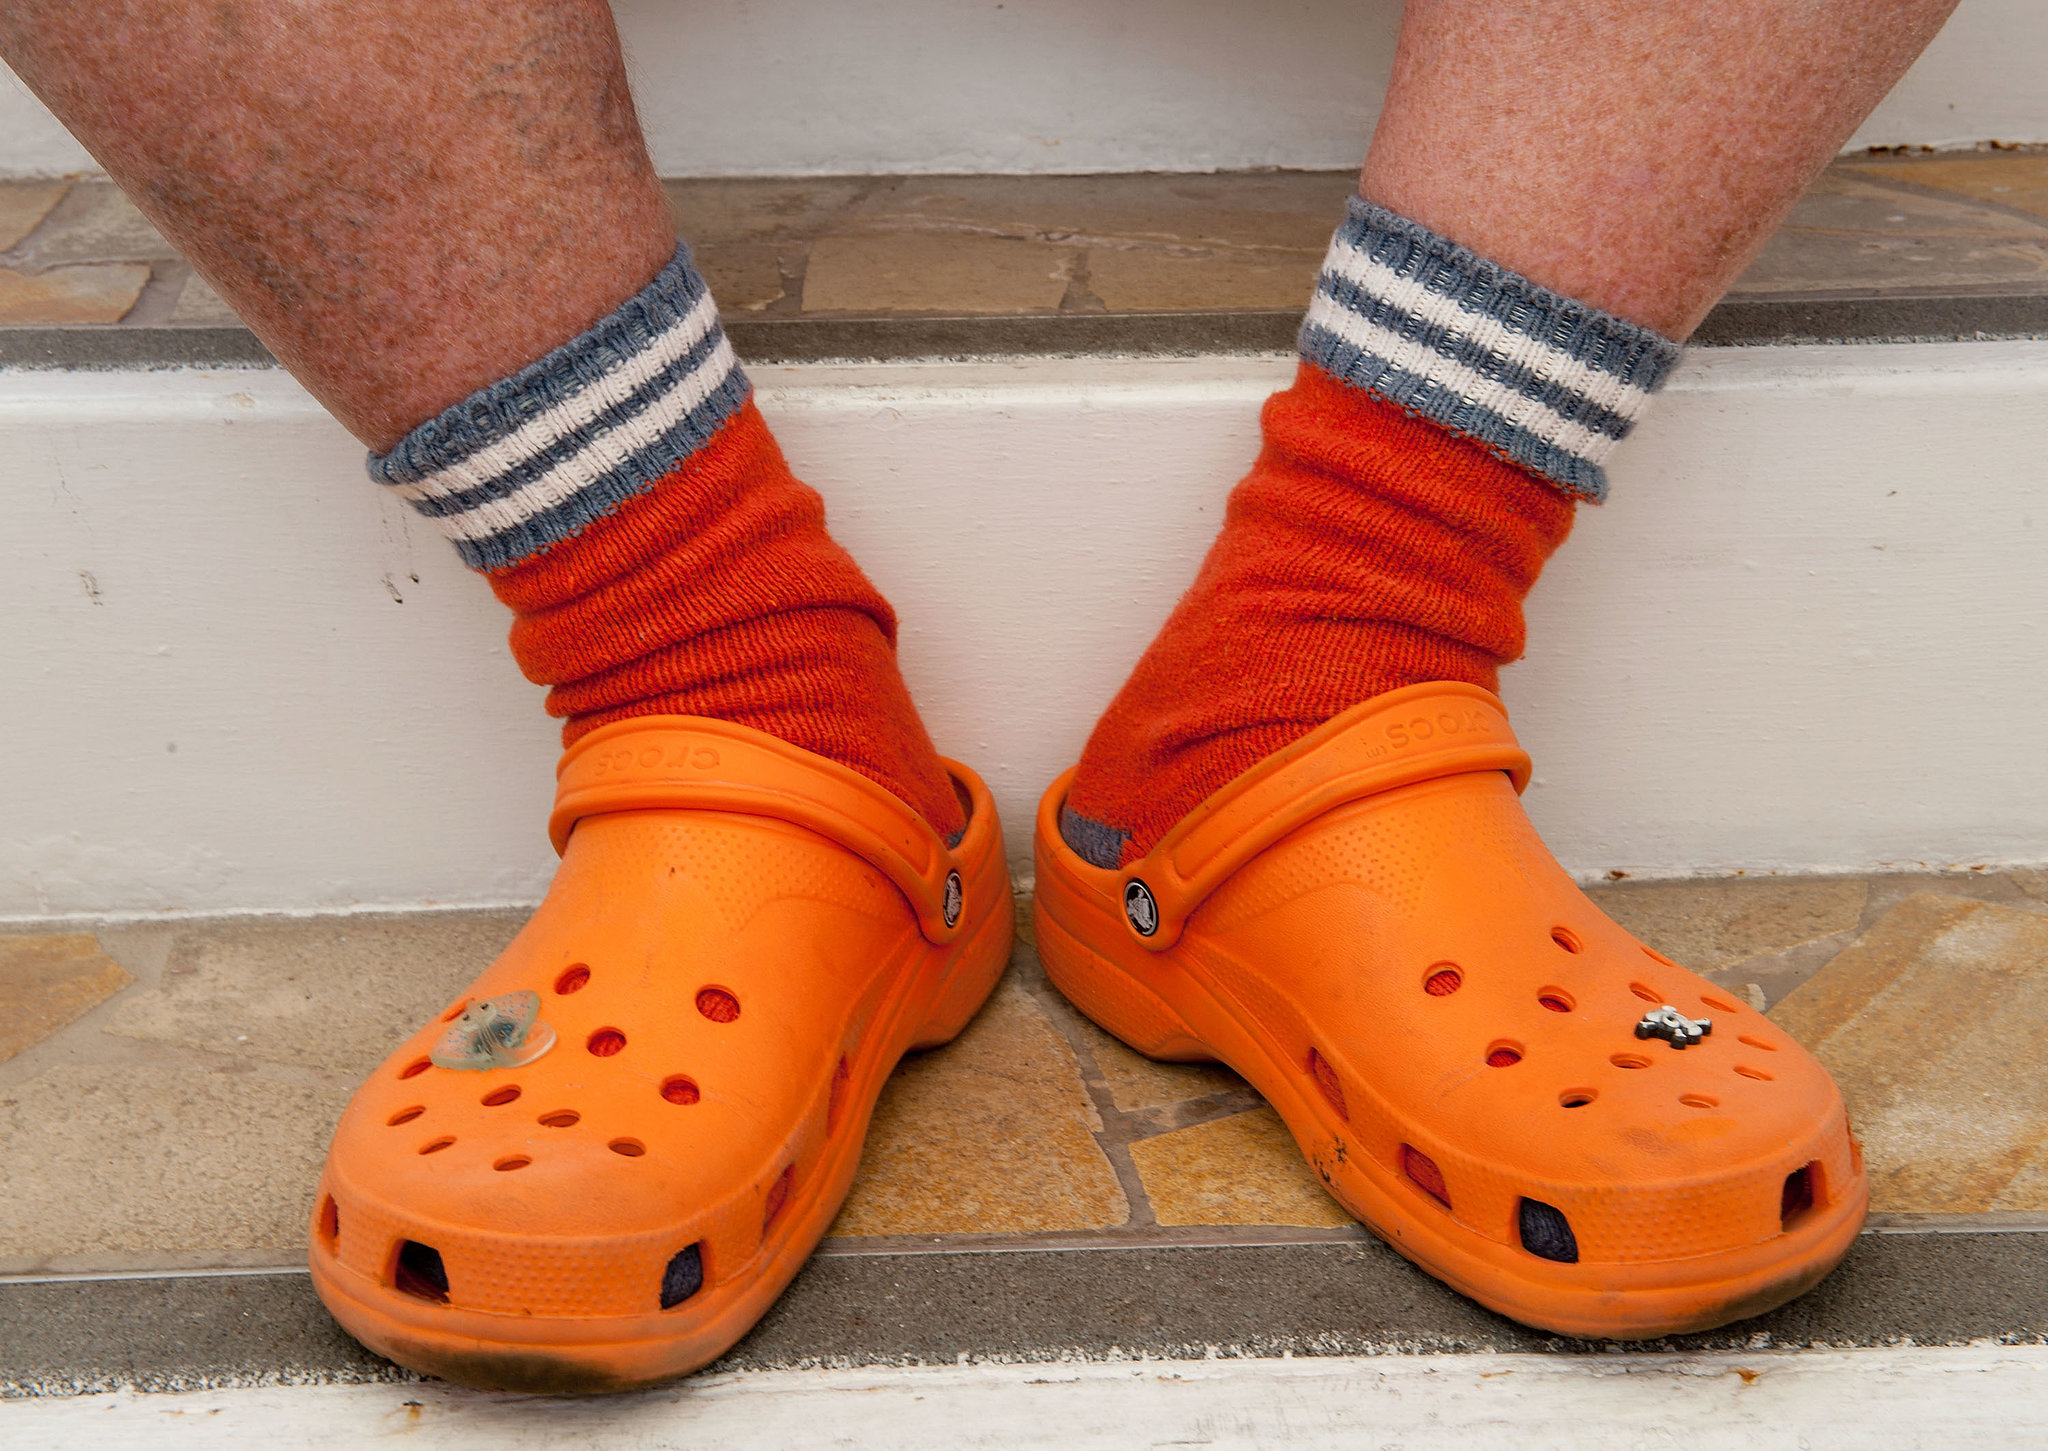 The socks came complimentary with the Crocs. Pretty hip, right?!